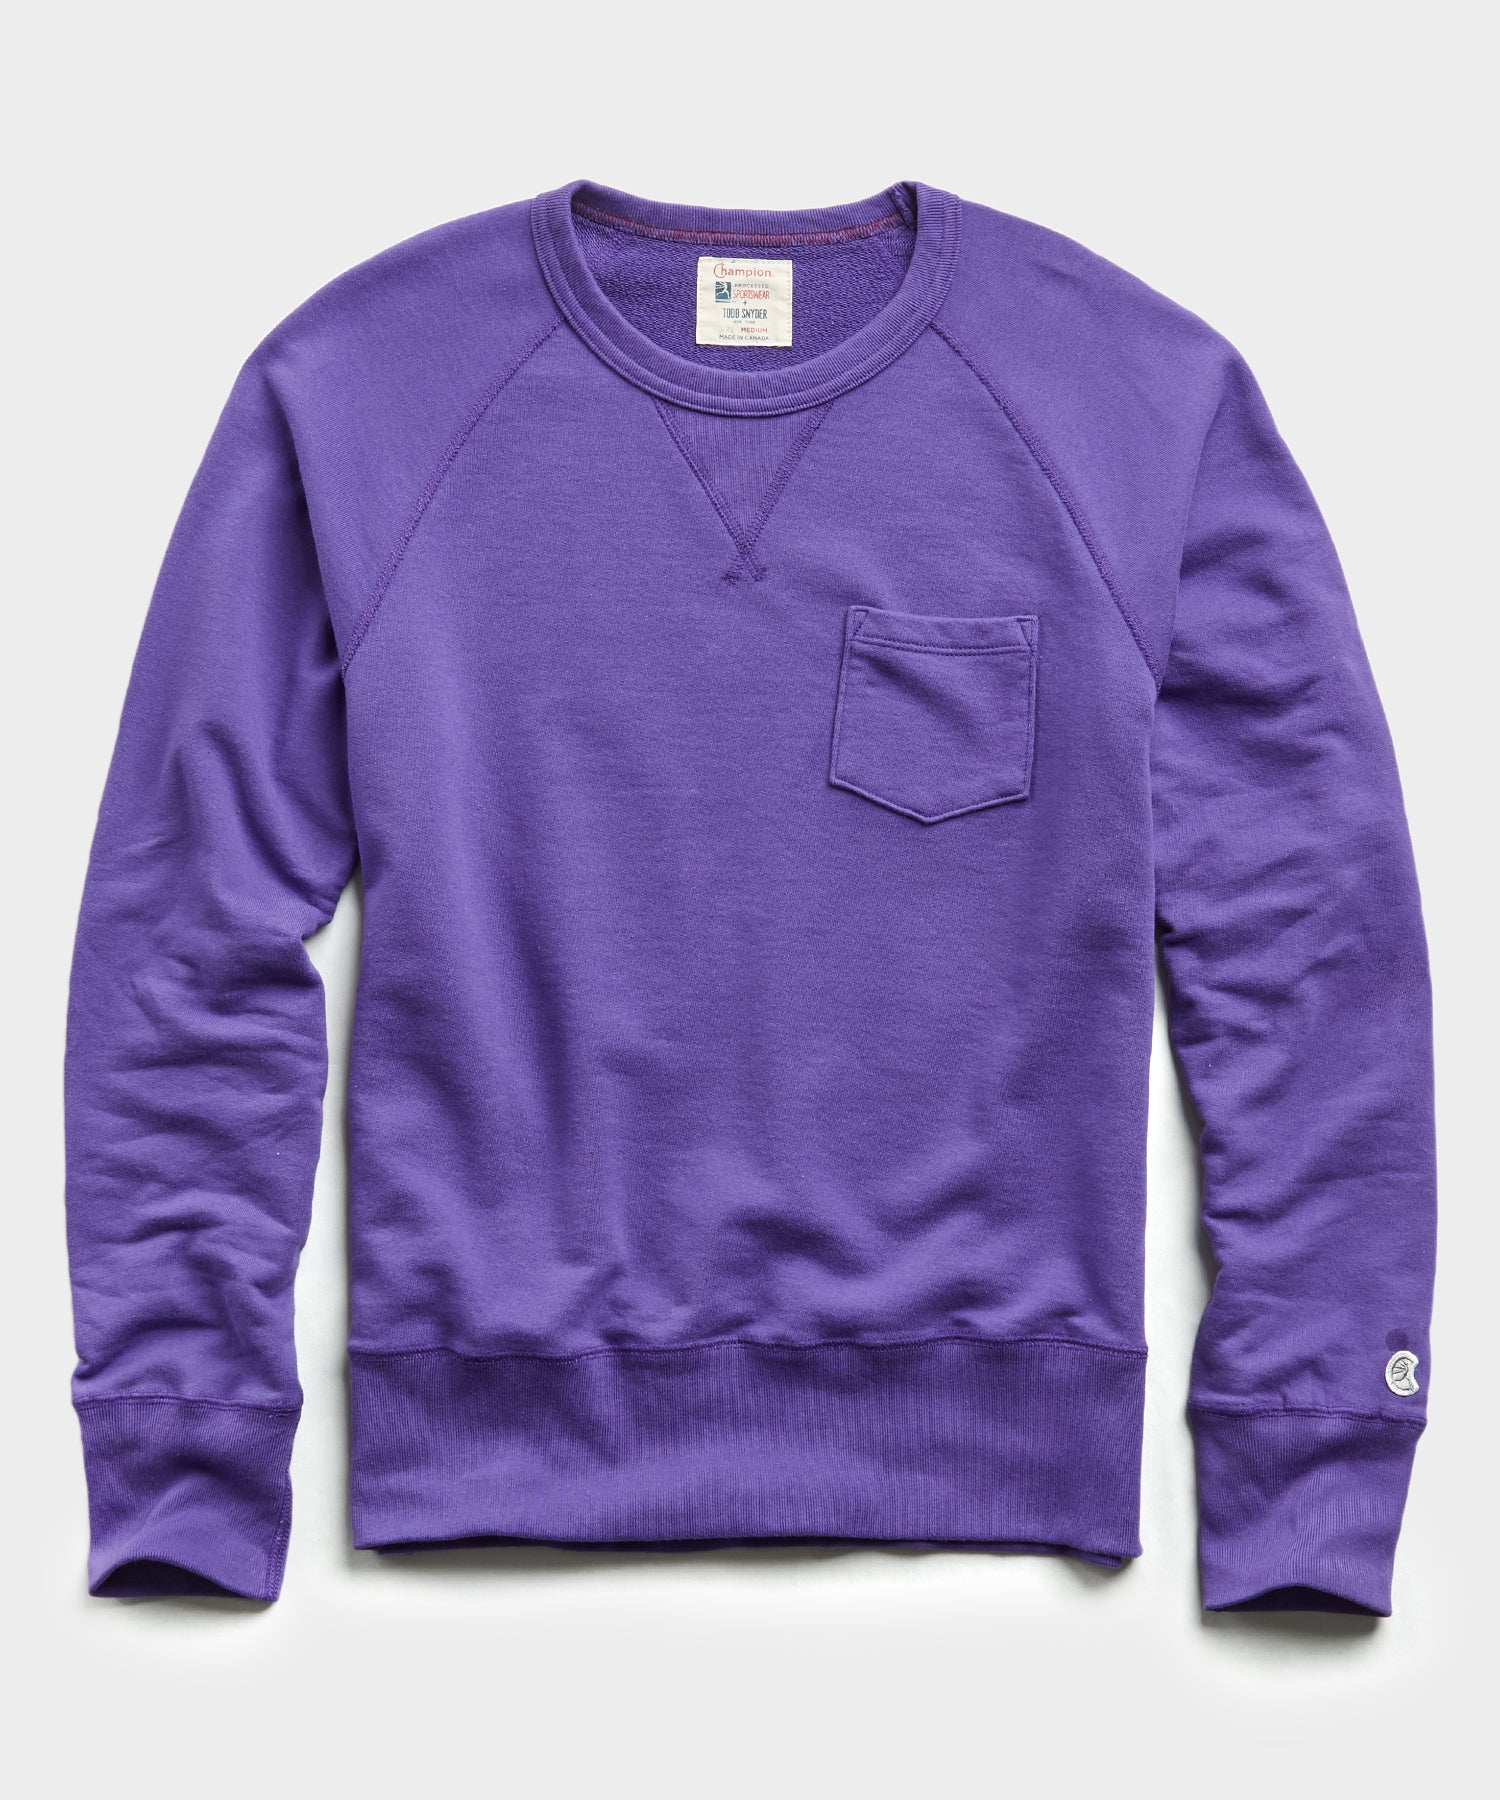 Terry Pocket Sweatshirt in Royal Purple